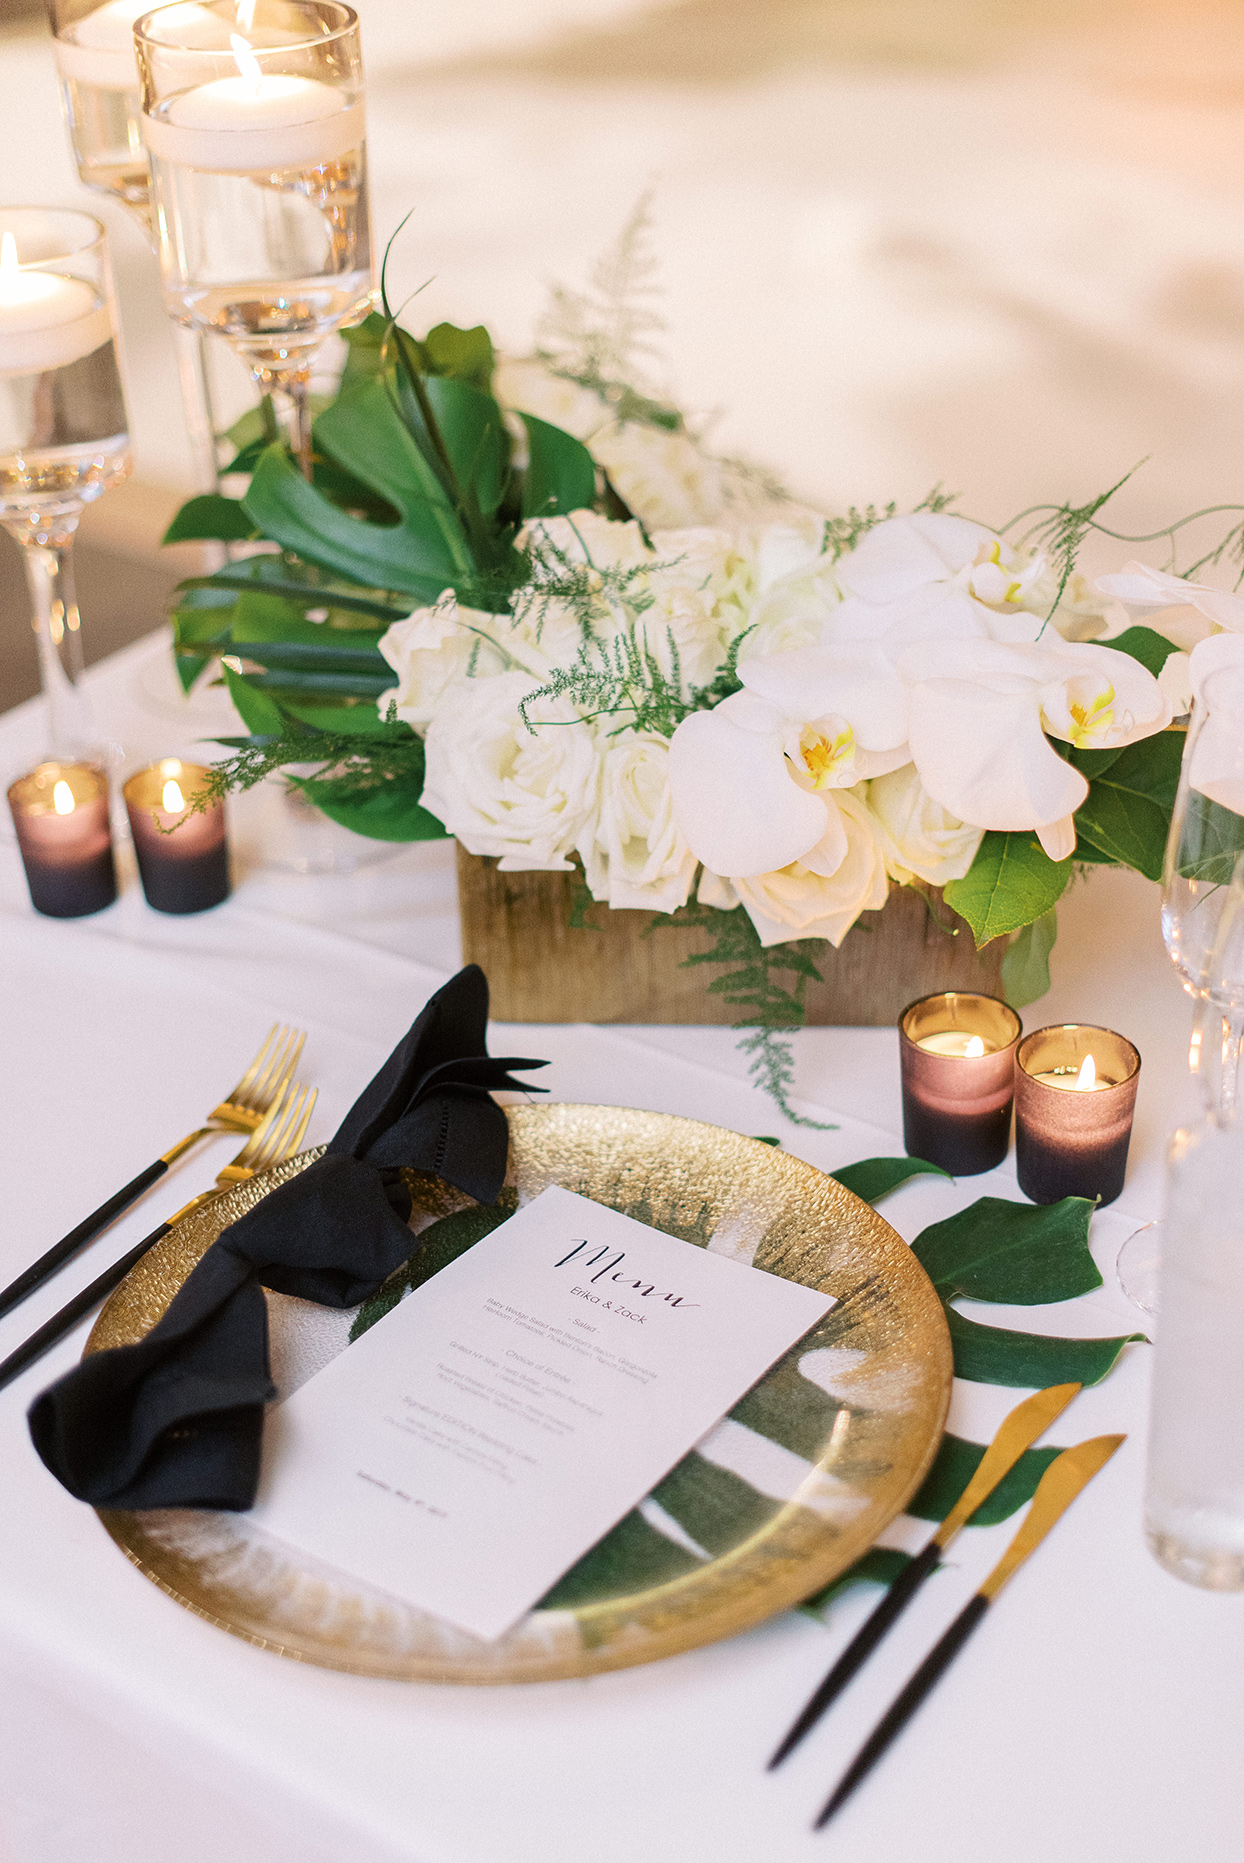 Wedding place setting with gold chargers, gilded flatware, and black hemstitch napkins